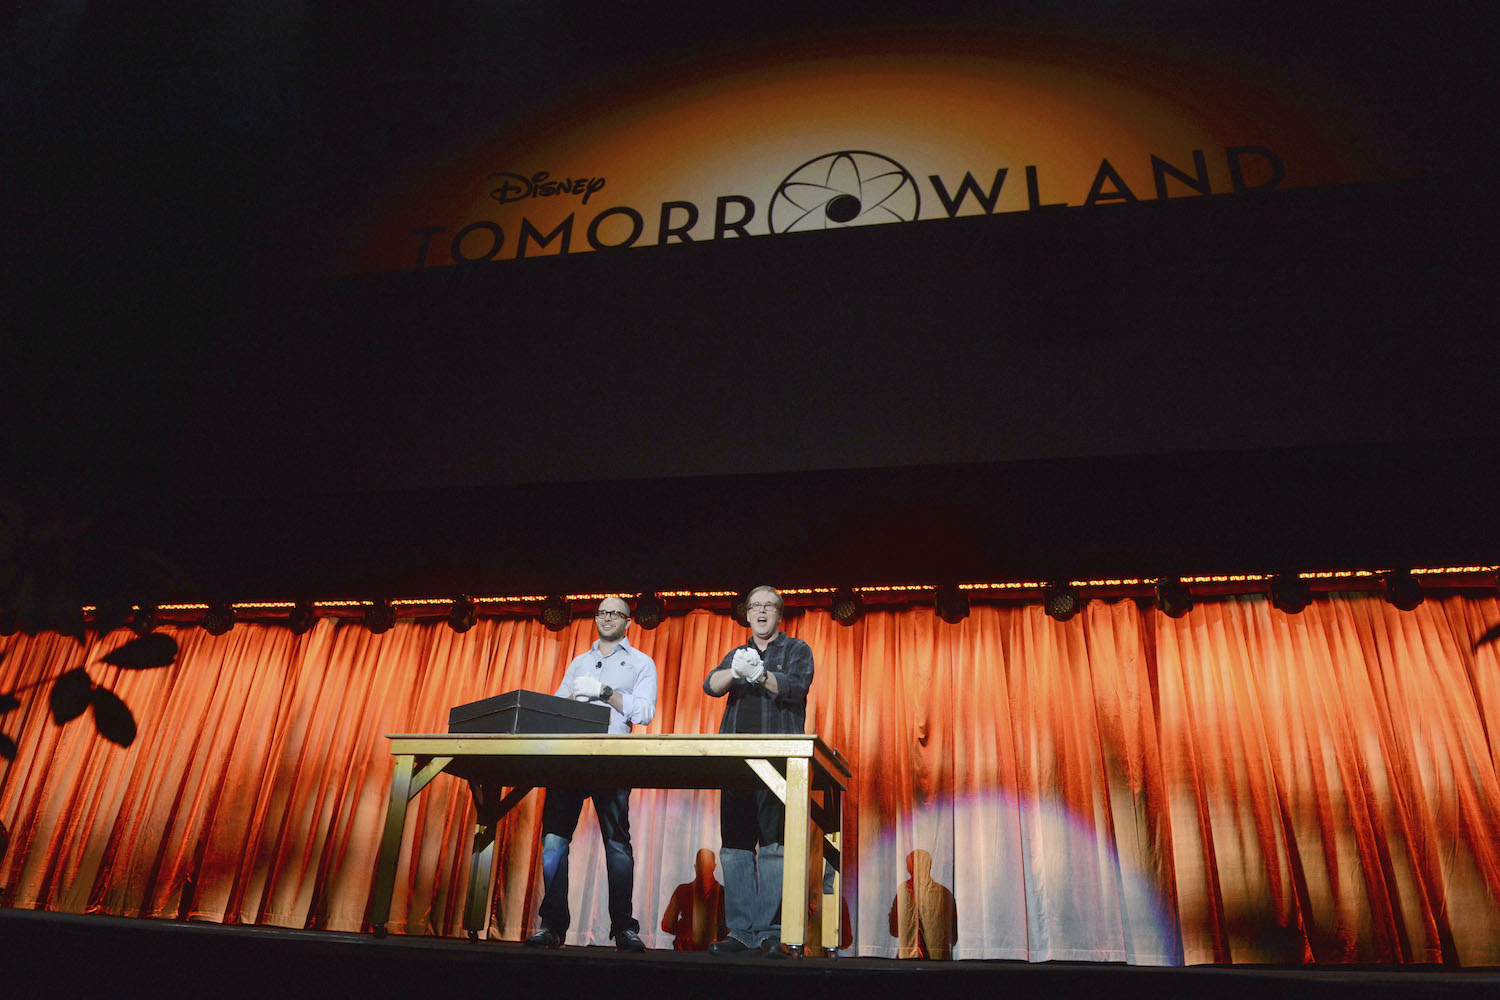 Lindelof (left) and Bird (right) tease Tomorrowland at the D23 Expo